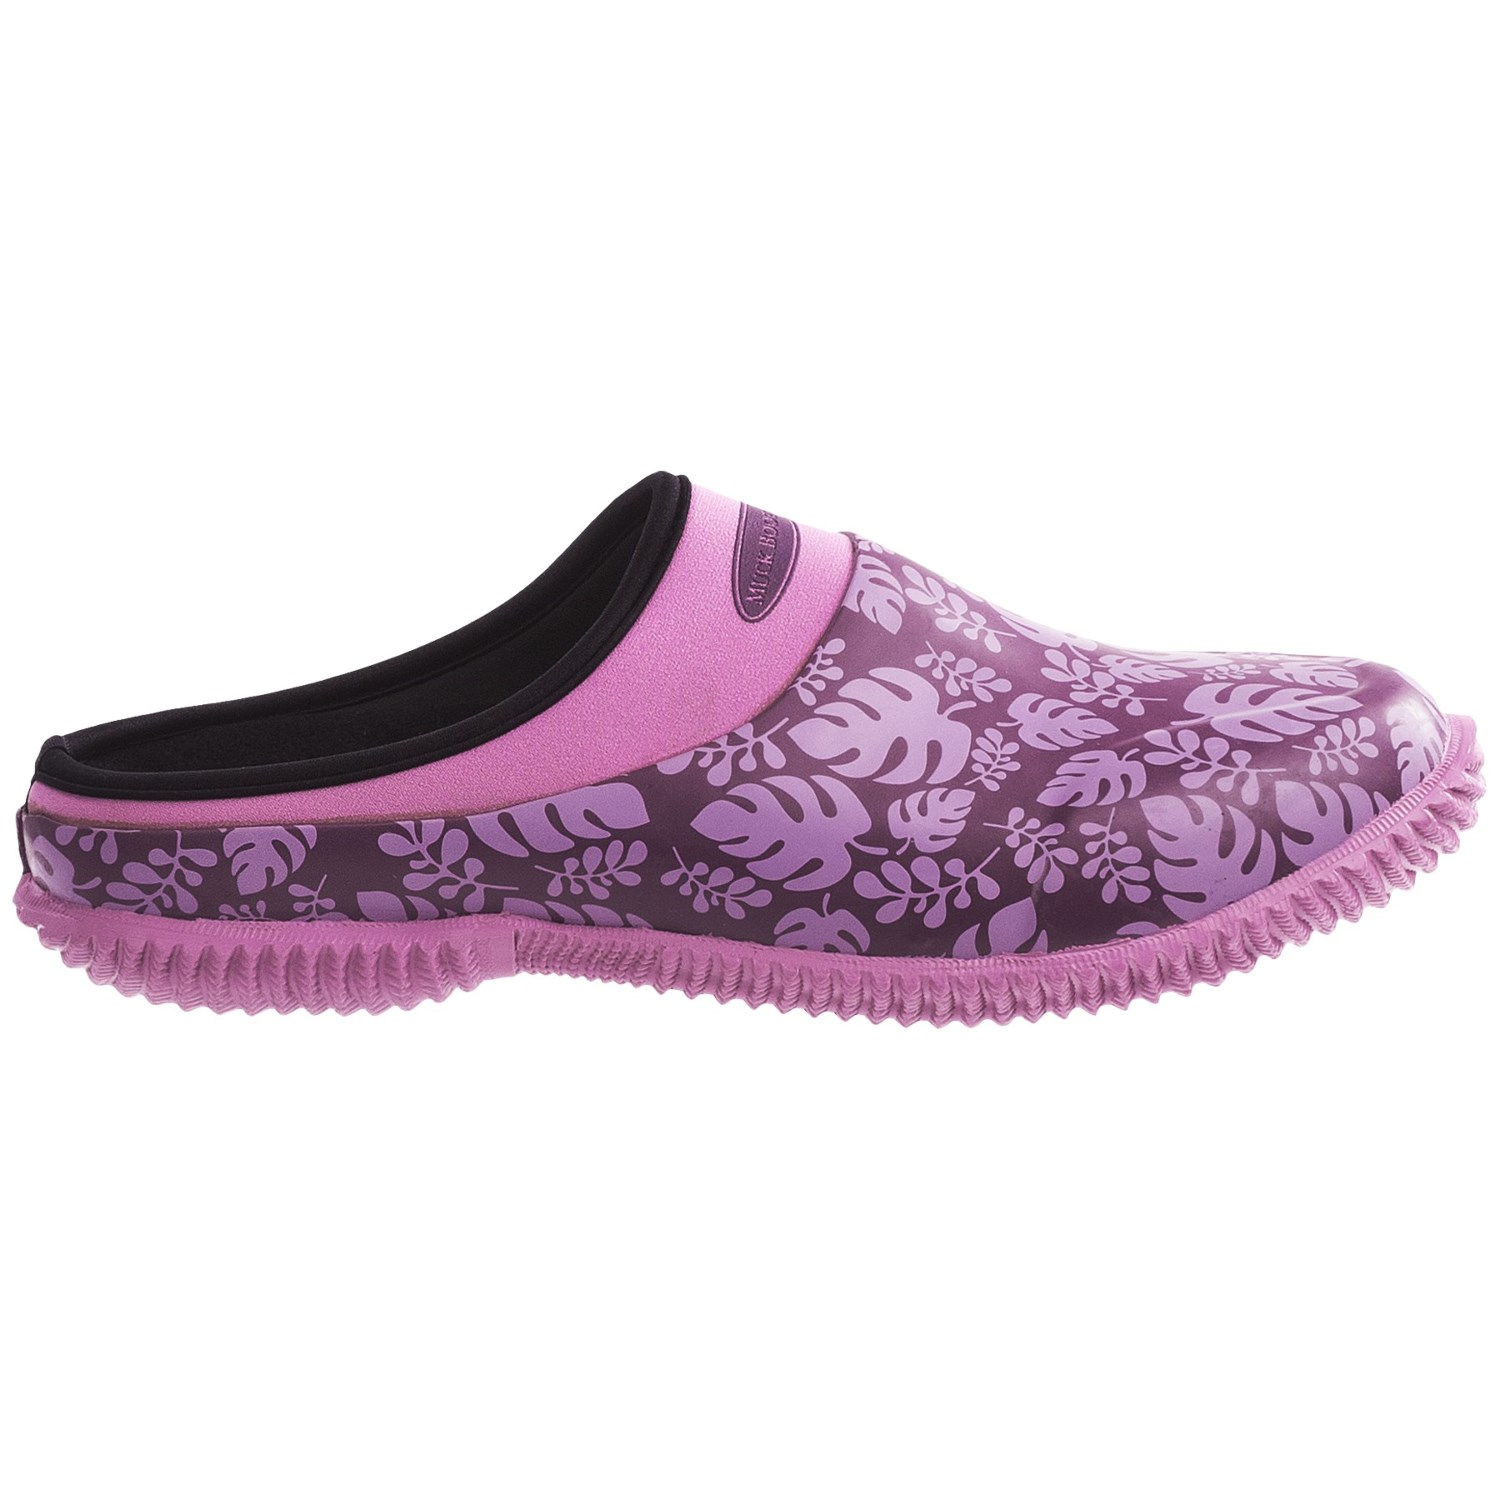 muck boot company daily garden clogs for girls 6671f